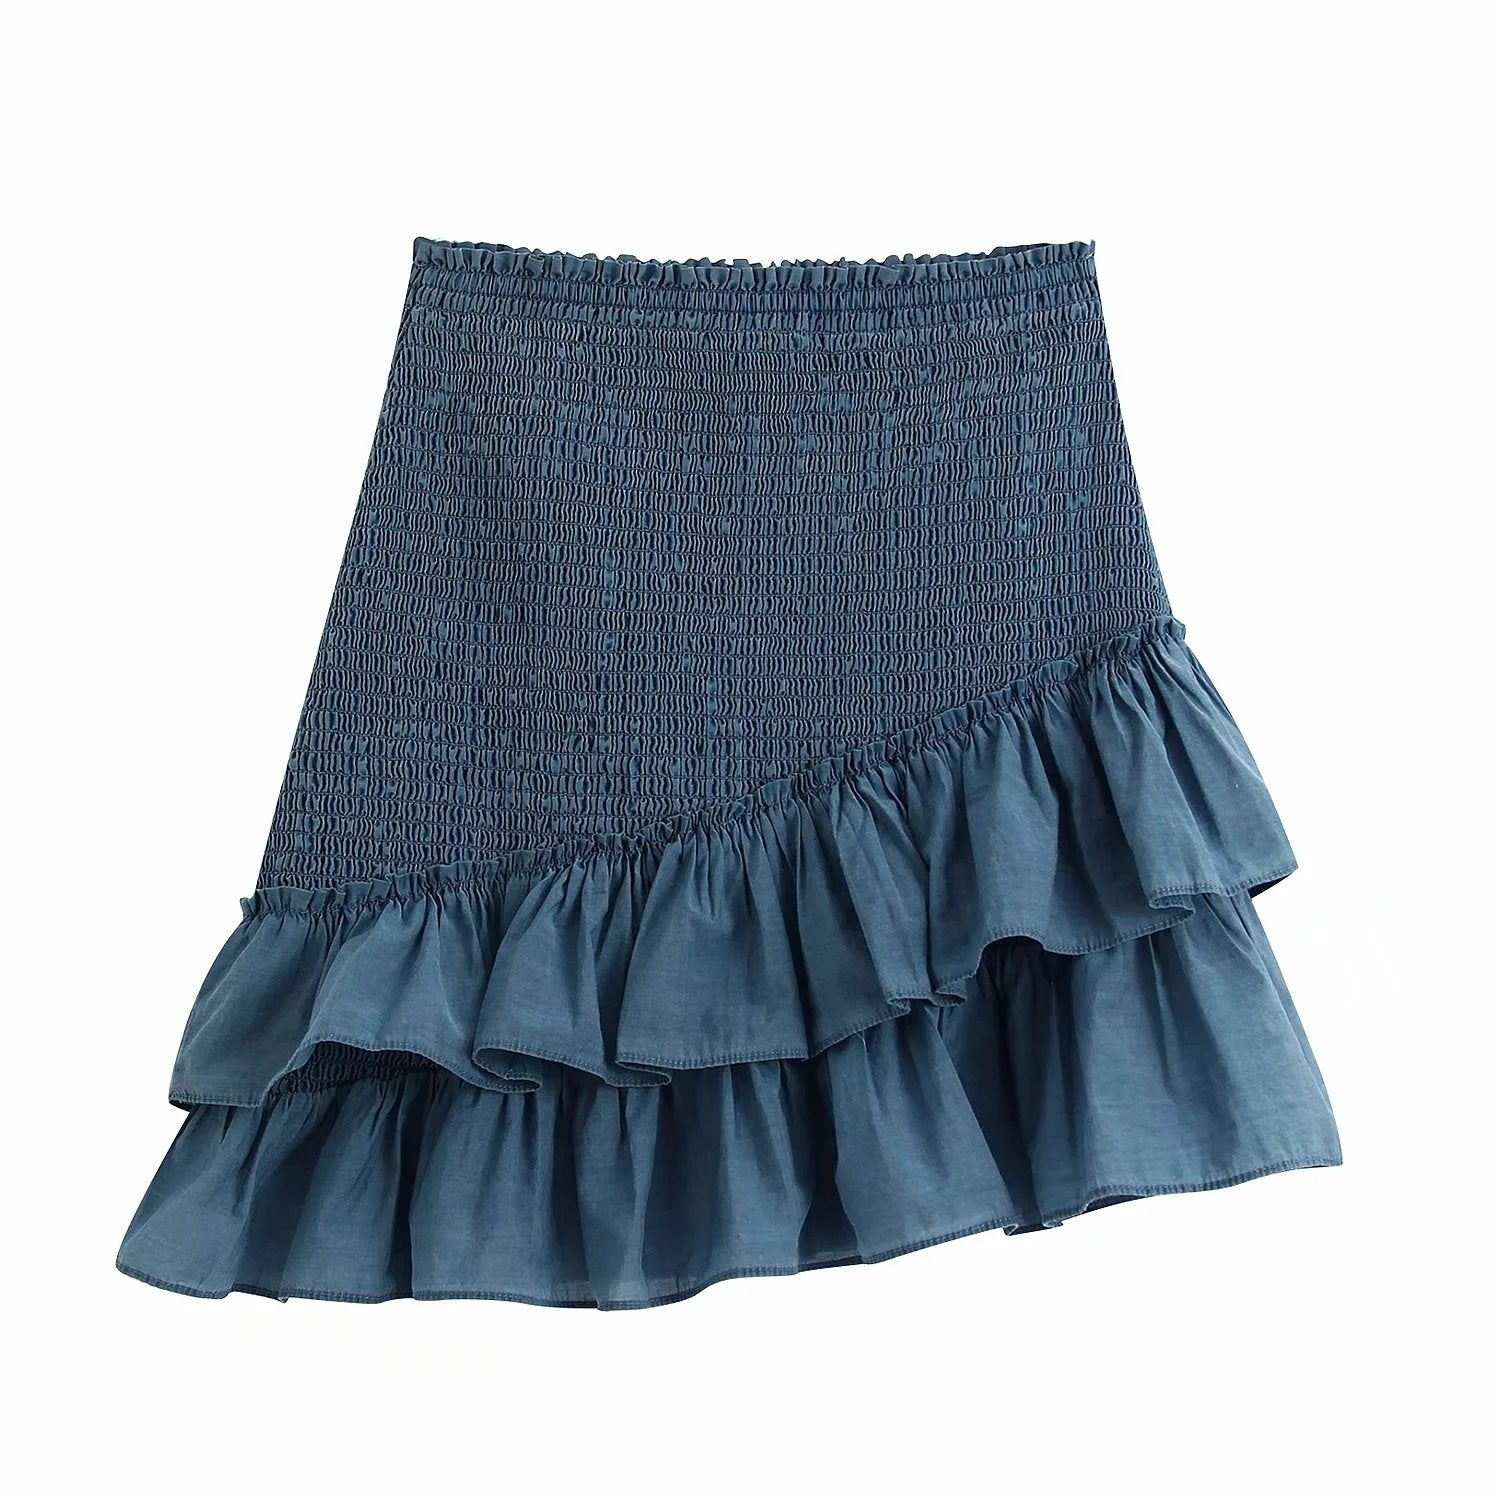 Audrey Shirred Ruffle Skirt